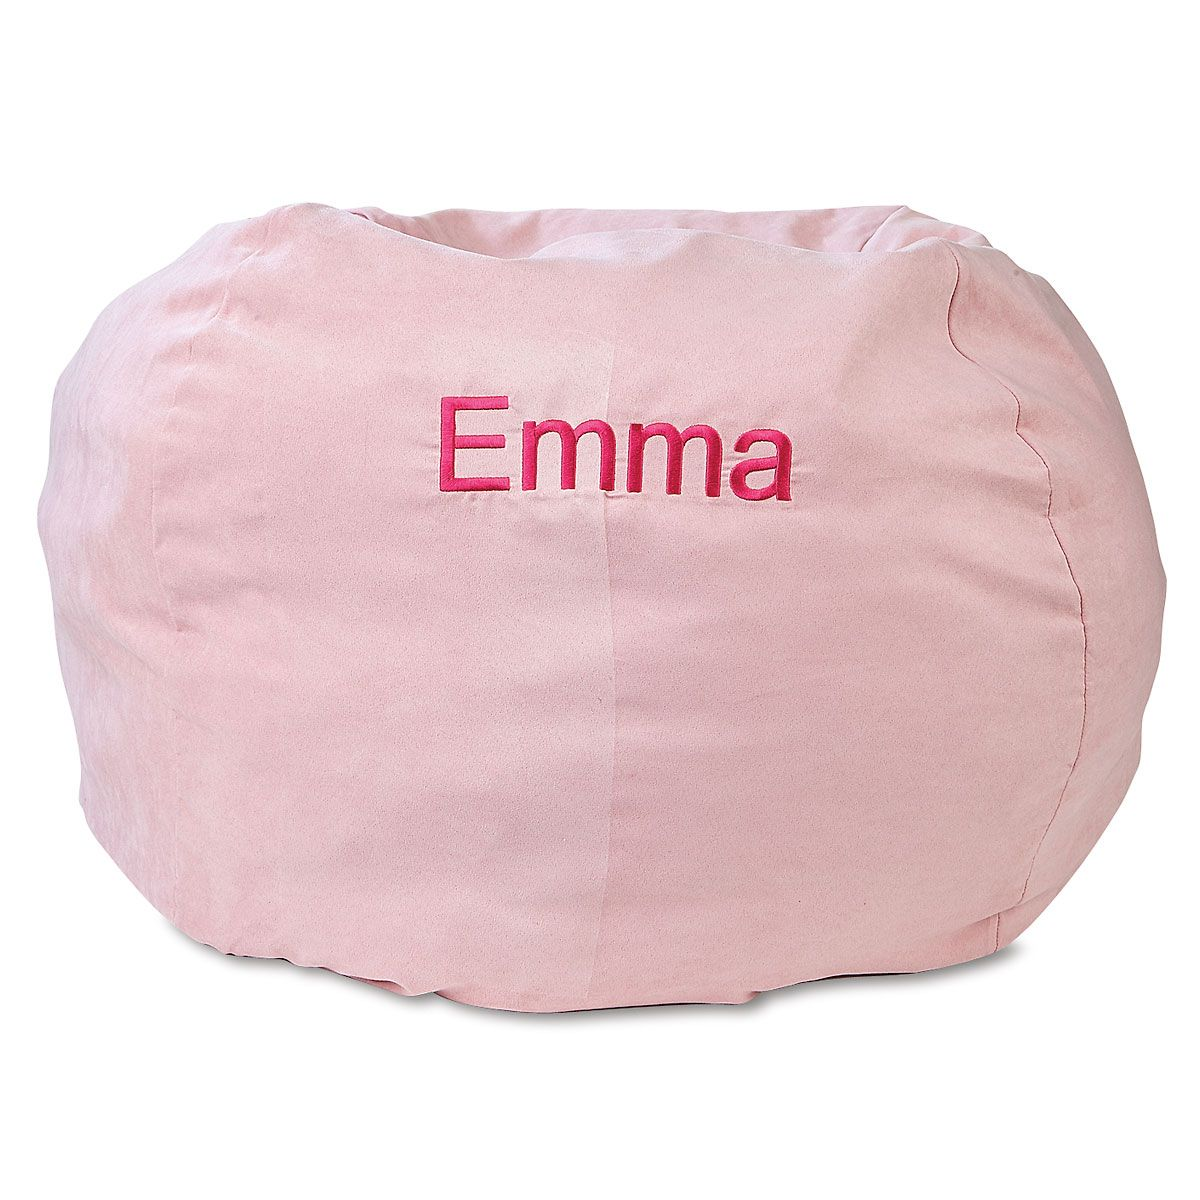 bing bag chairs grey mesh office chair personalized bean for kids lillian vernon pink